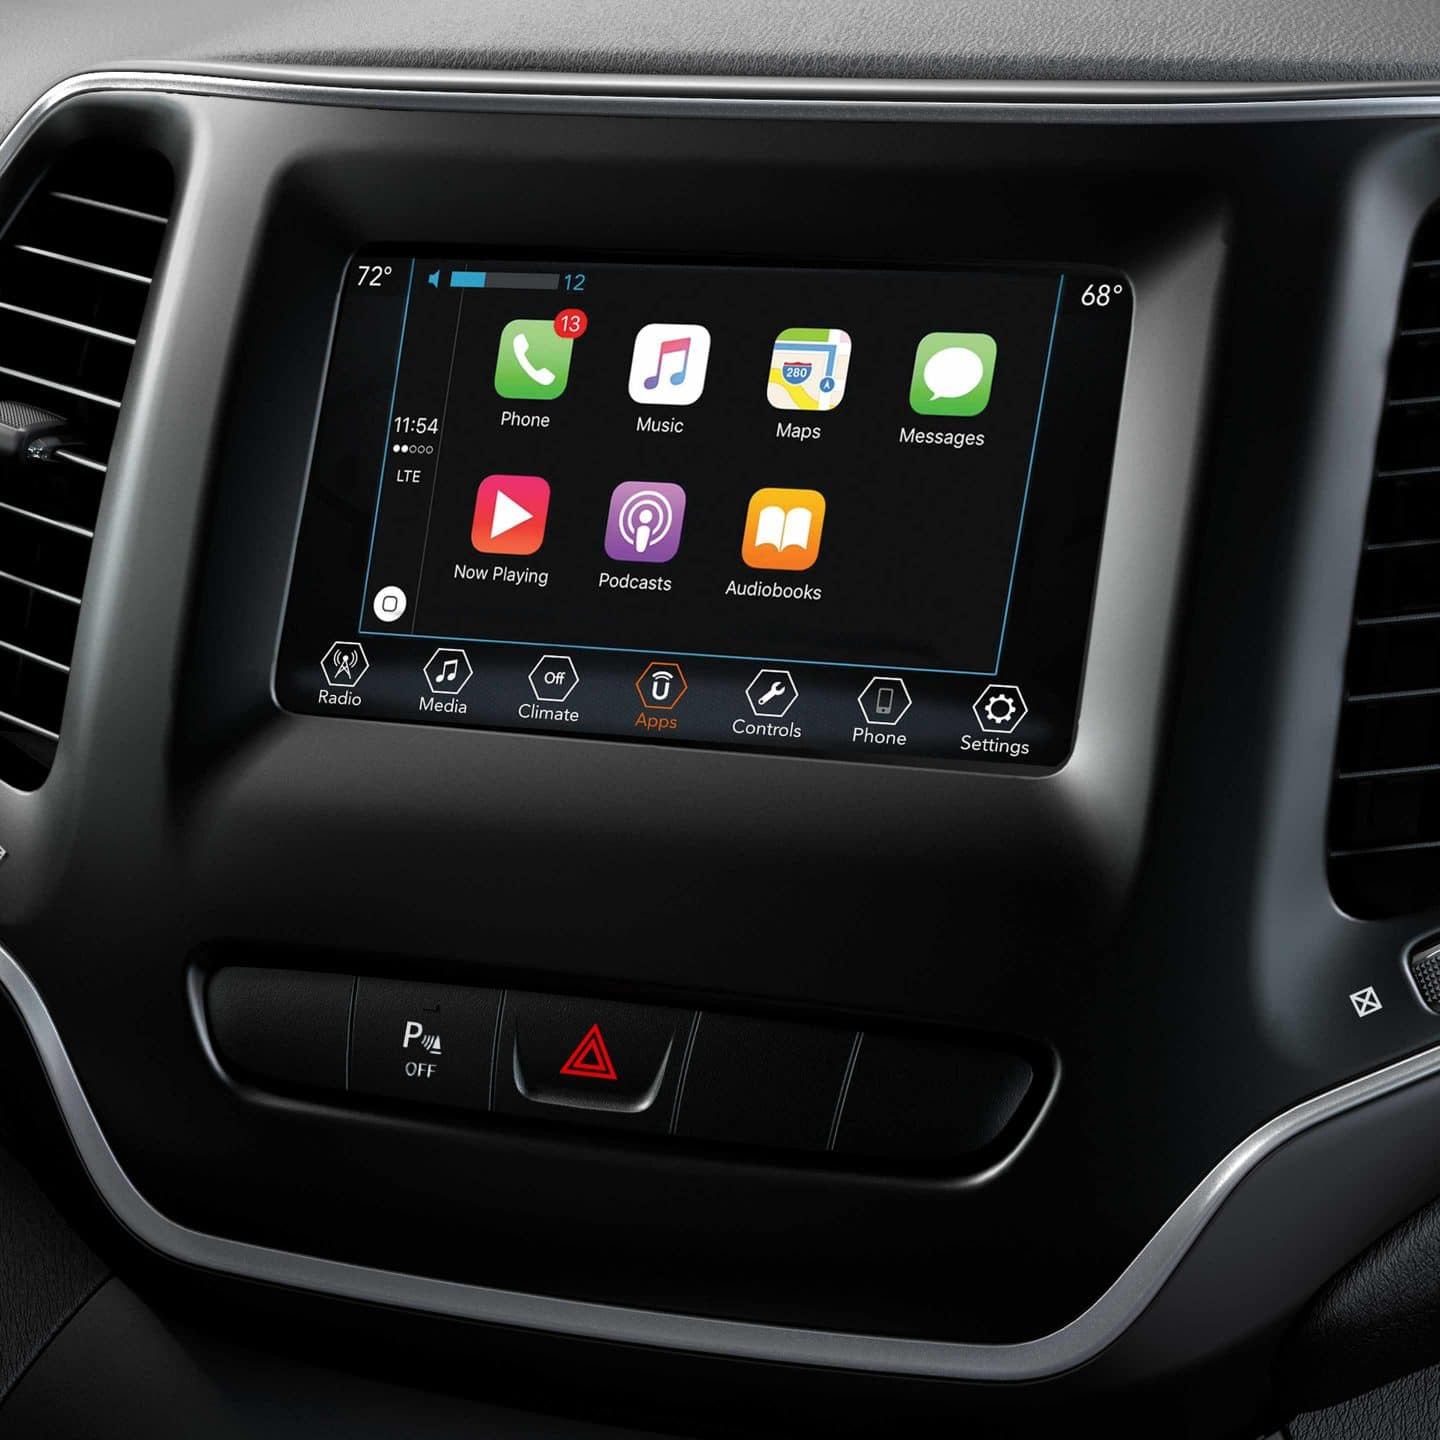 2019 Jeep Cherokee Infotainment Panel displaying apple car play screen